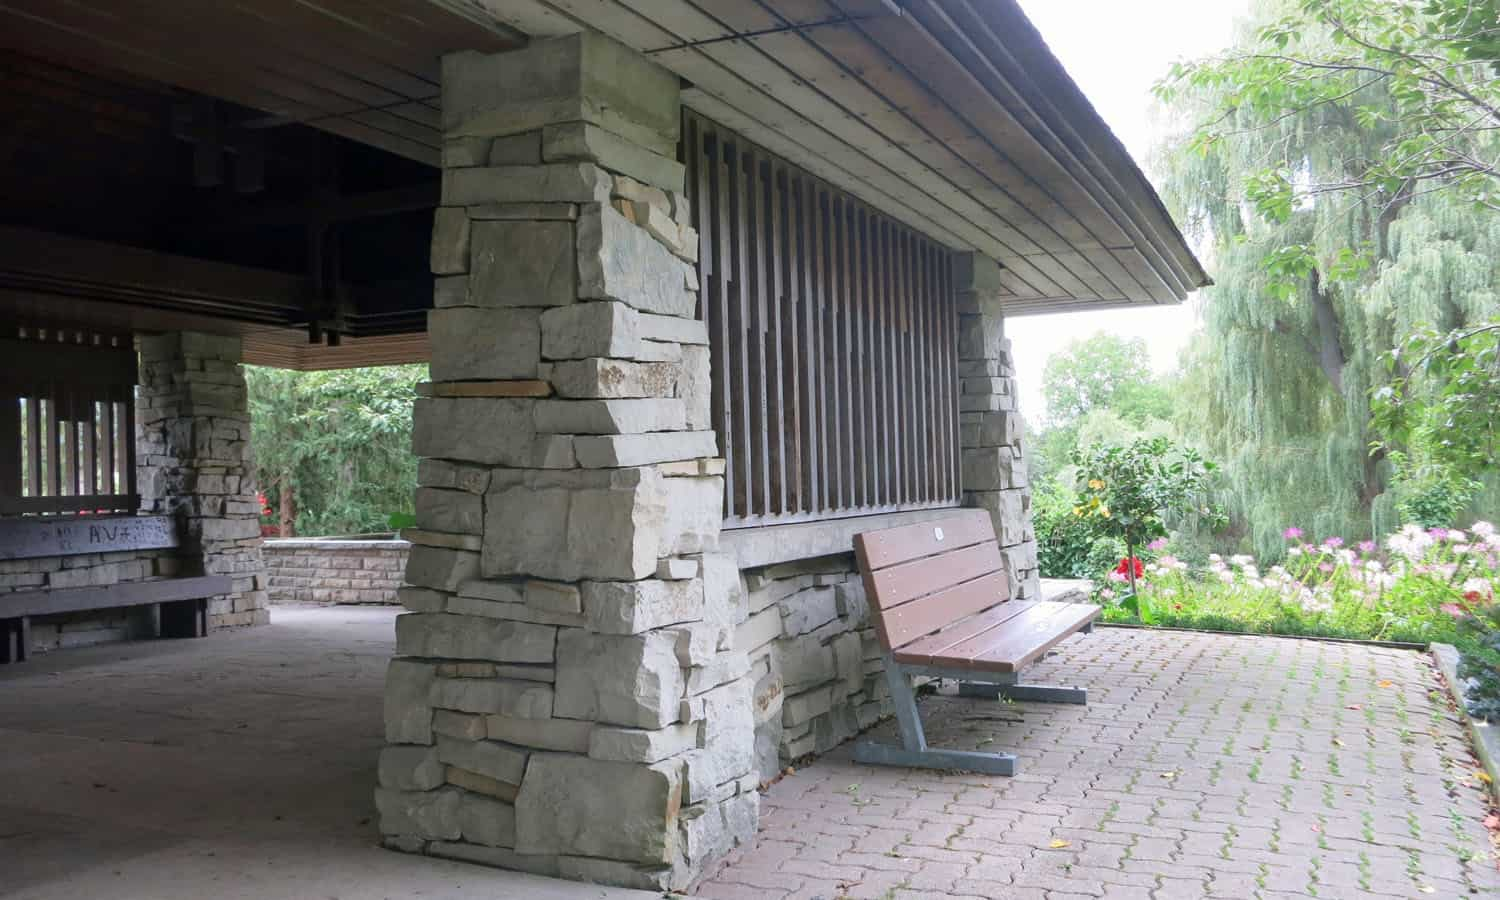 SHELTER The rusticity of the stone piers contrasts with the fine wooden joinery of the screens